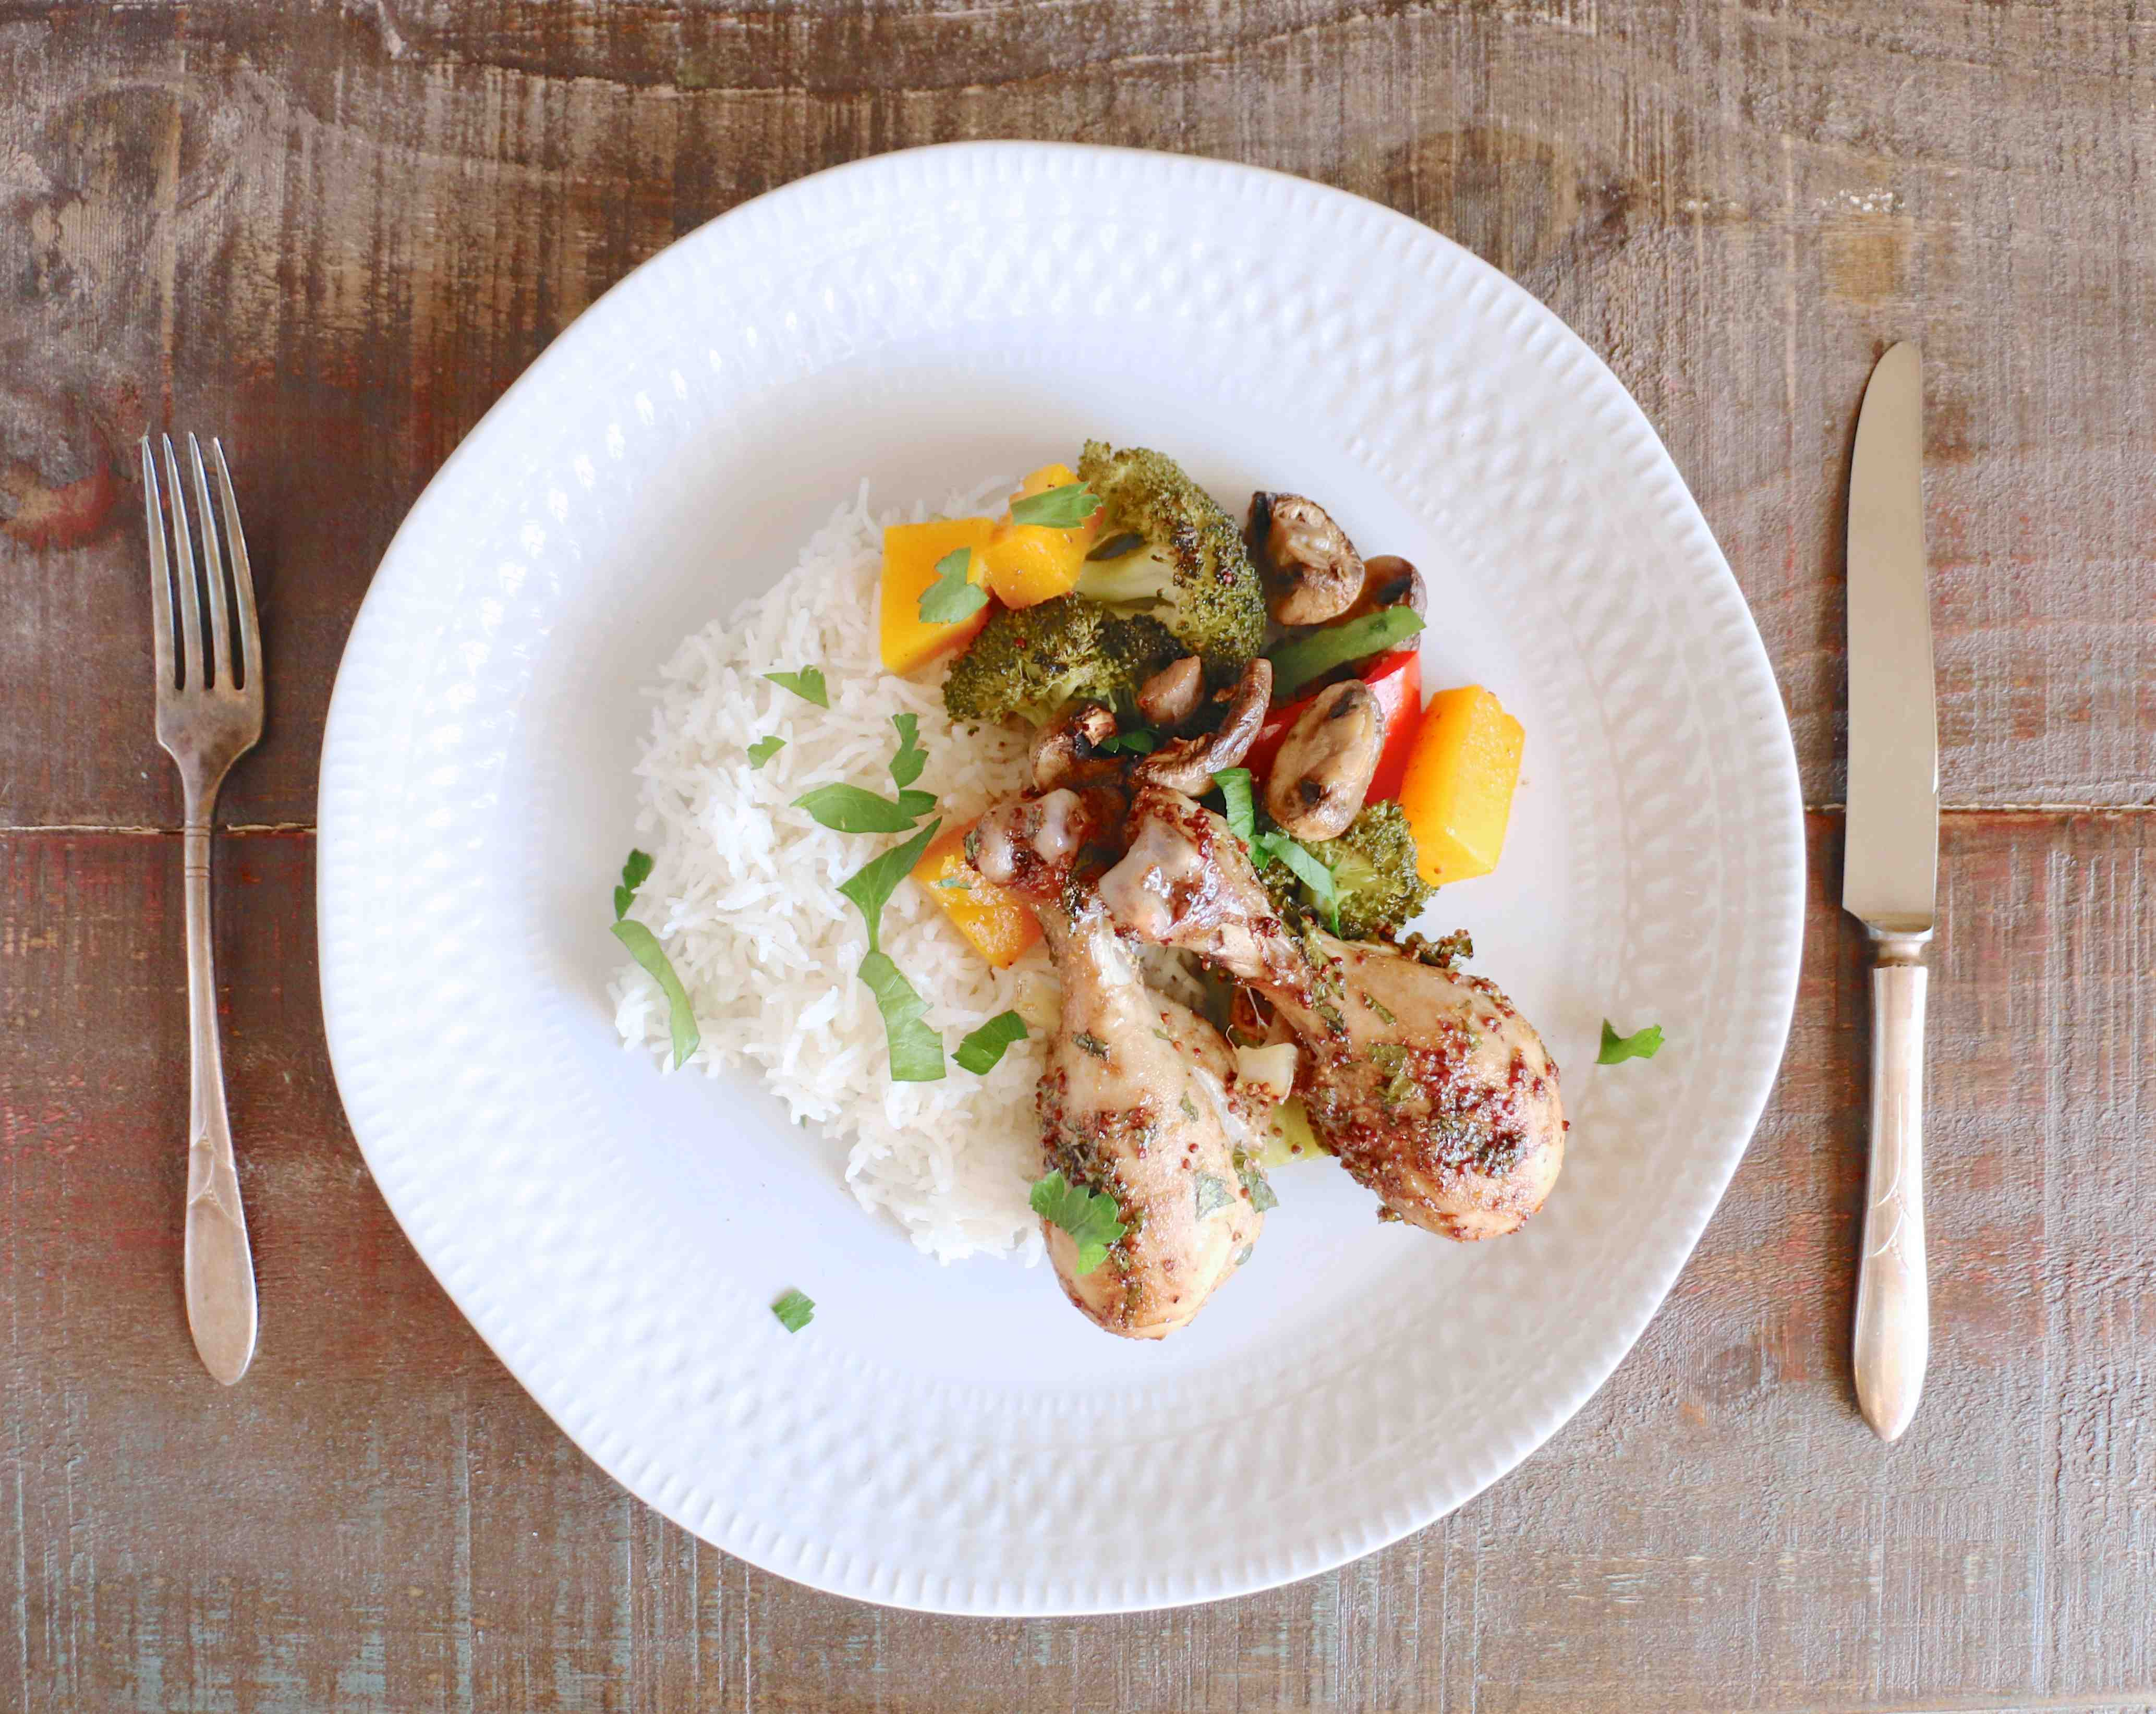 Roasted Balsamic Chicken and Vegetables